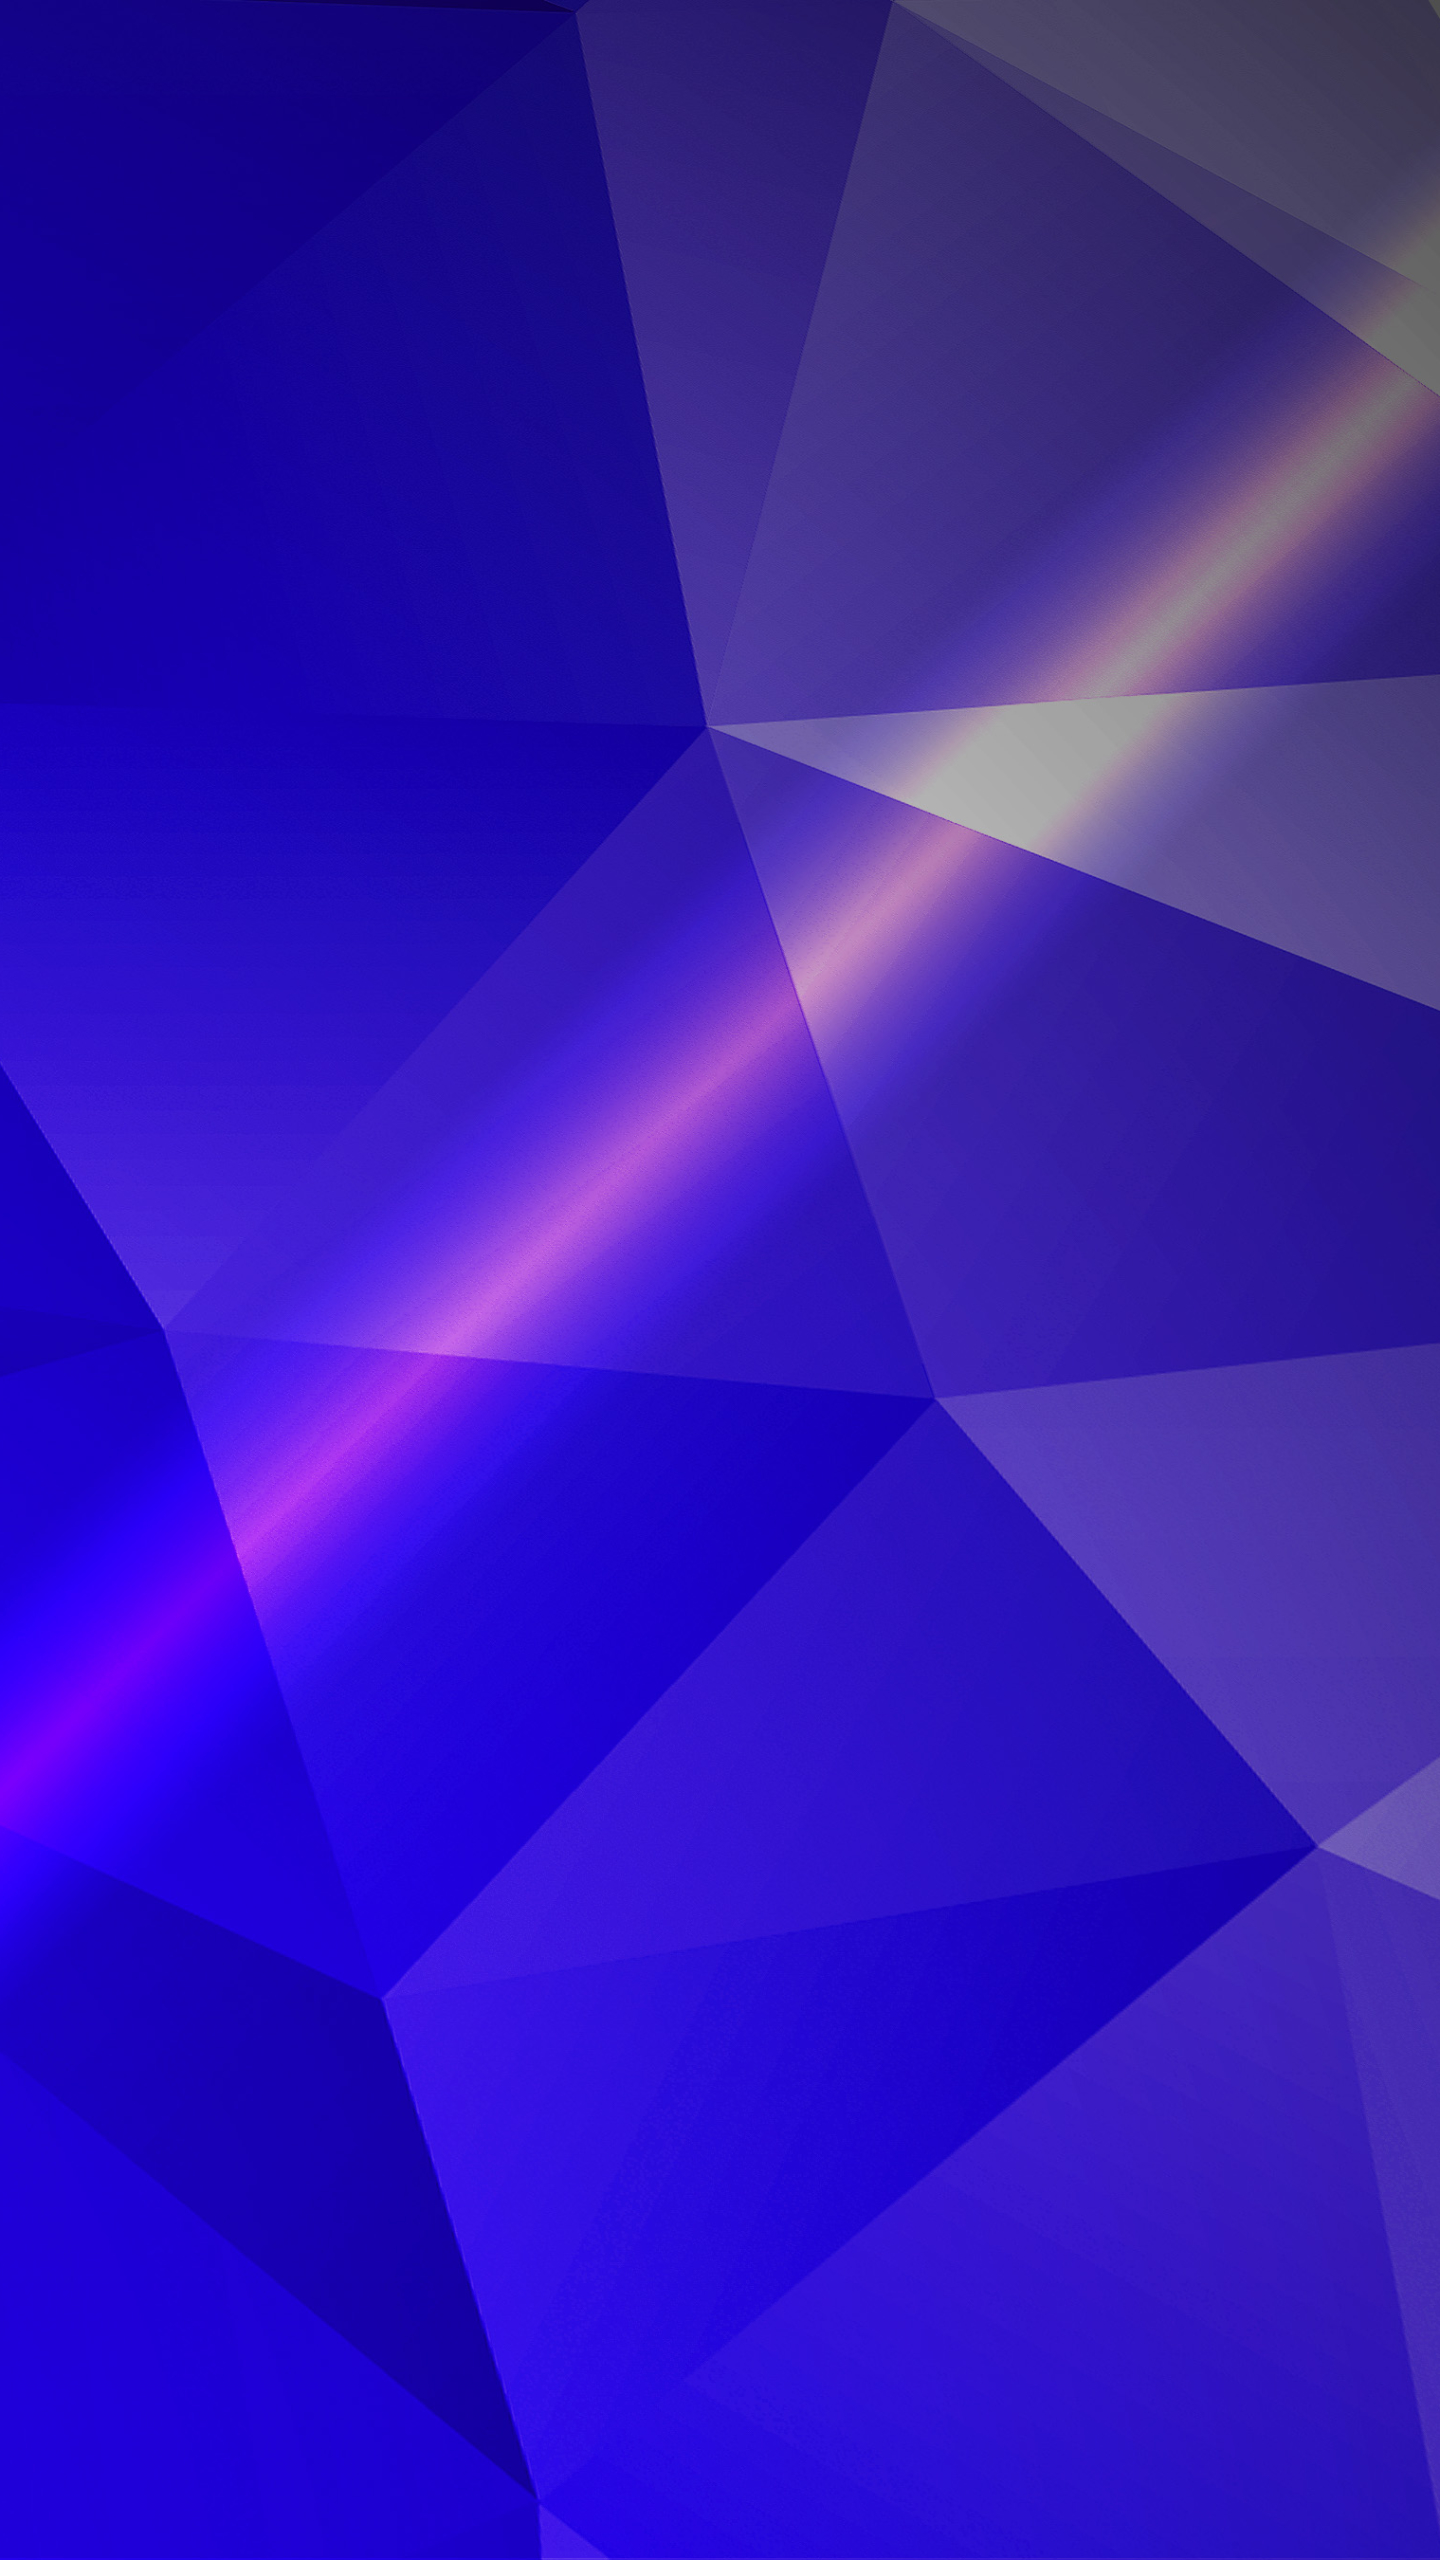 Abstract/Triangle (1440x2560) Wallpaper ID: 824927 - Mobile